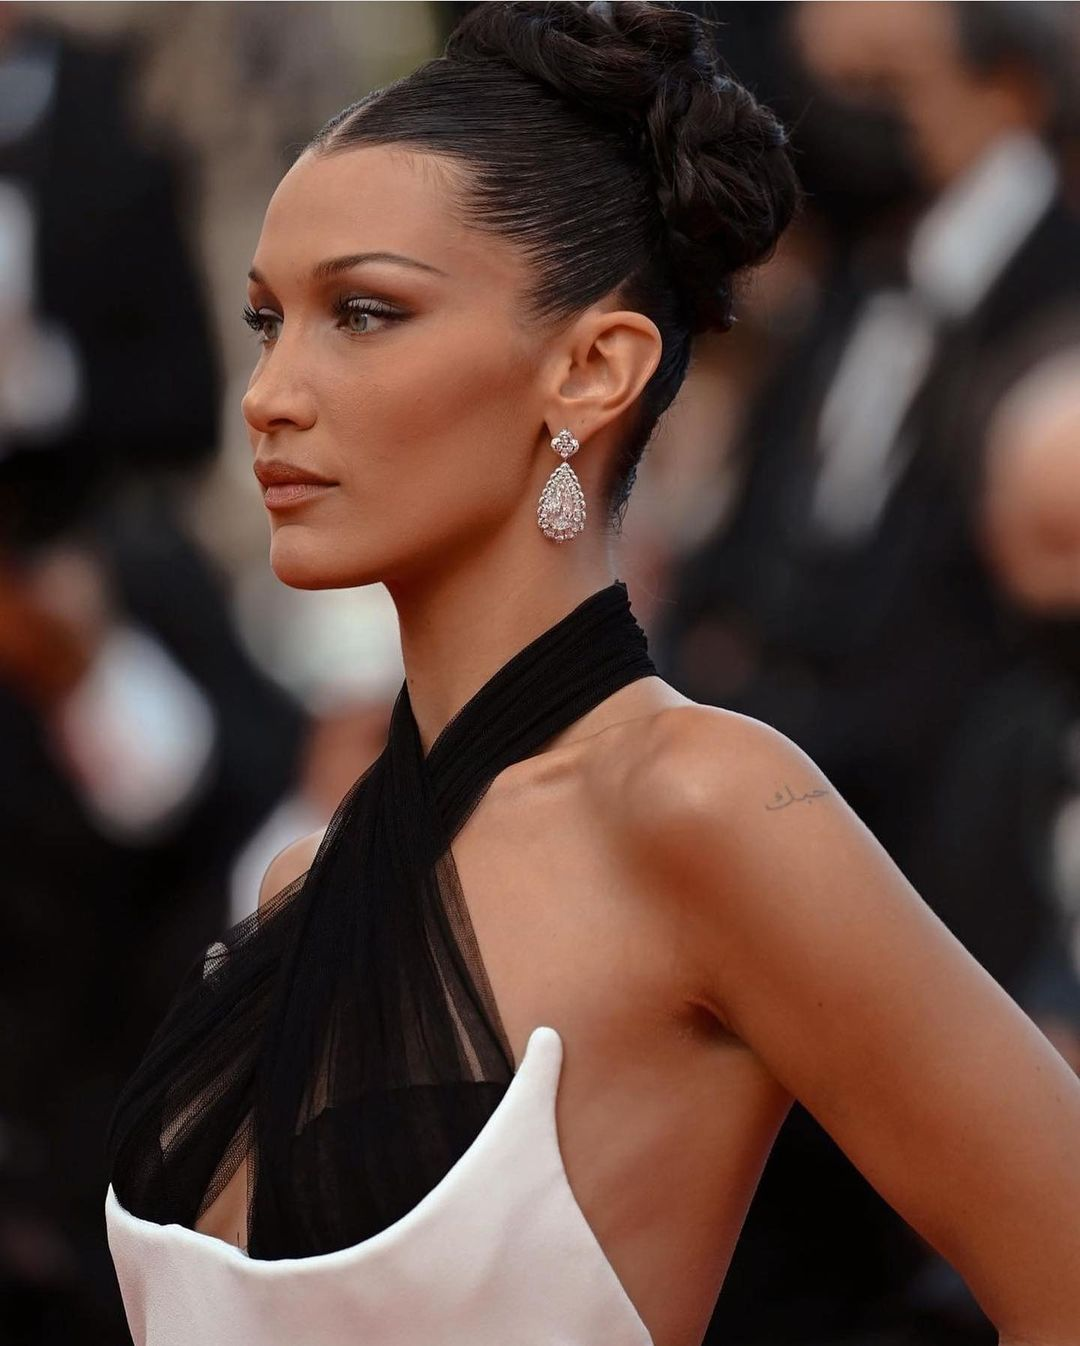 Cannes beauty moments